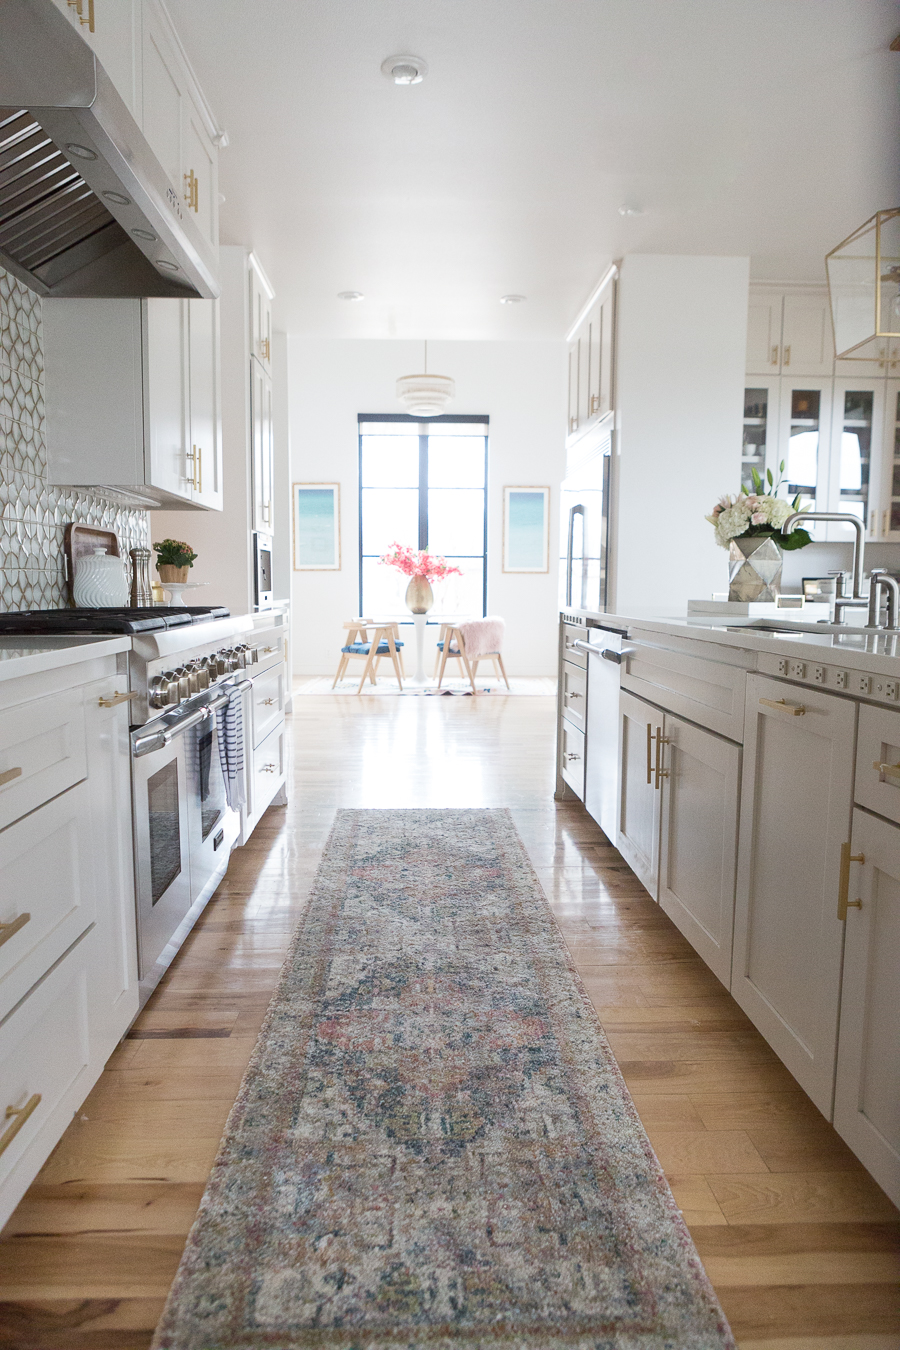 10 Beautiful Kitchen Runners for Your Home kitchen multi-colored kitchen runner between white cabinets on light wooden floors looking towards kitchen nook